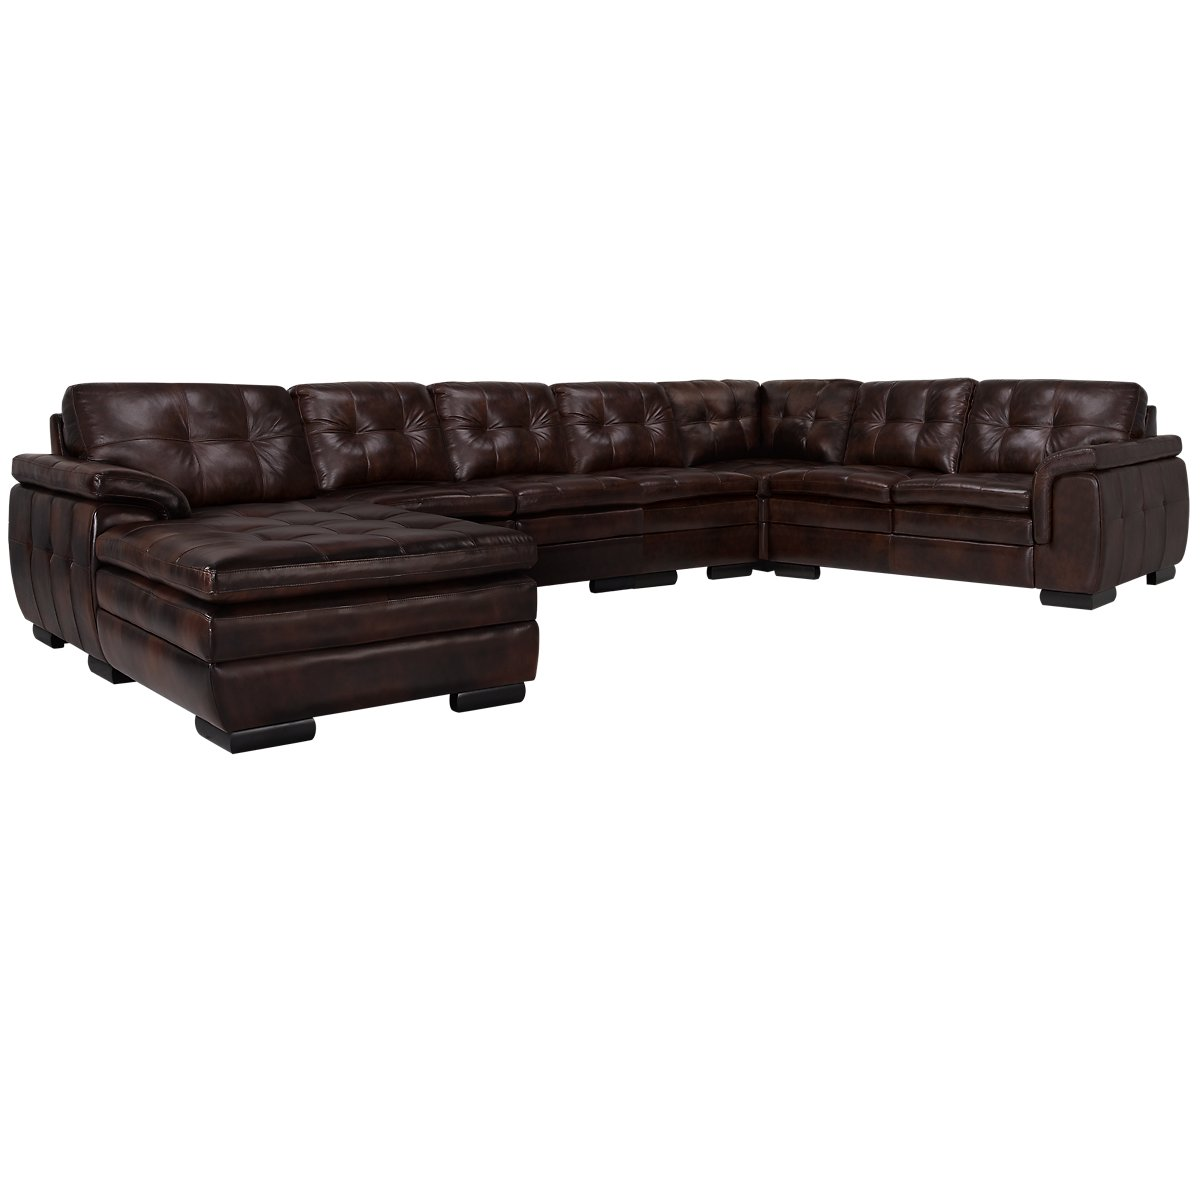 City furniture trevor dark brown leather large left for Brown leather chaise